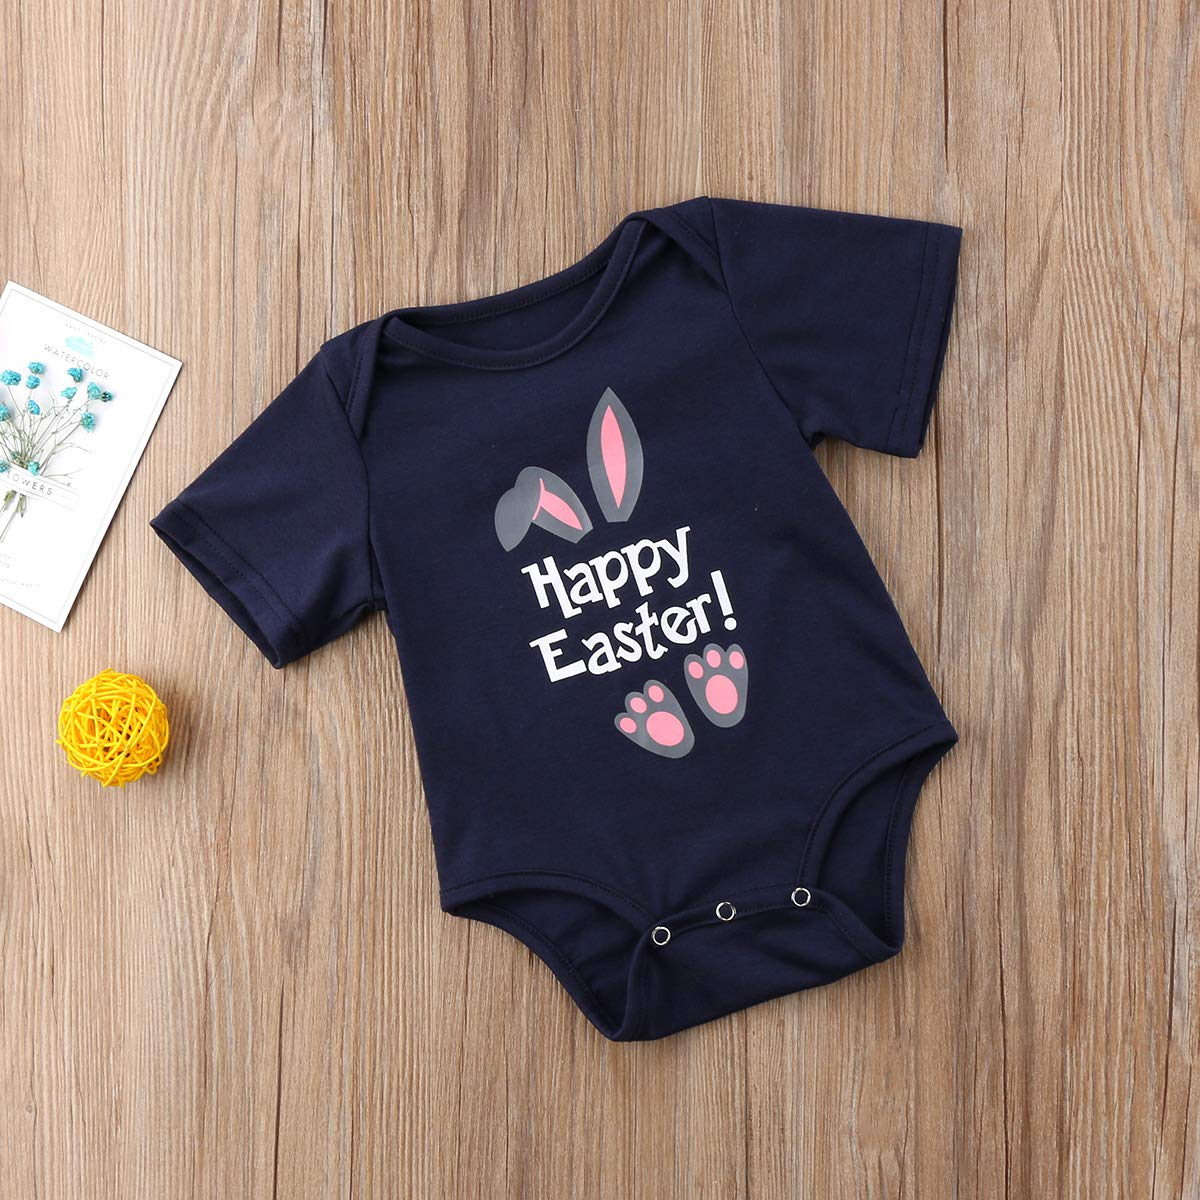 erherthertjtyj Easter Outfits for Newborn Infant Baby Boy /& Girl Bunny Print Romper One Piece Bodysuit Navy Blue